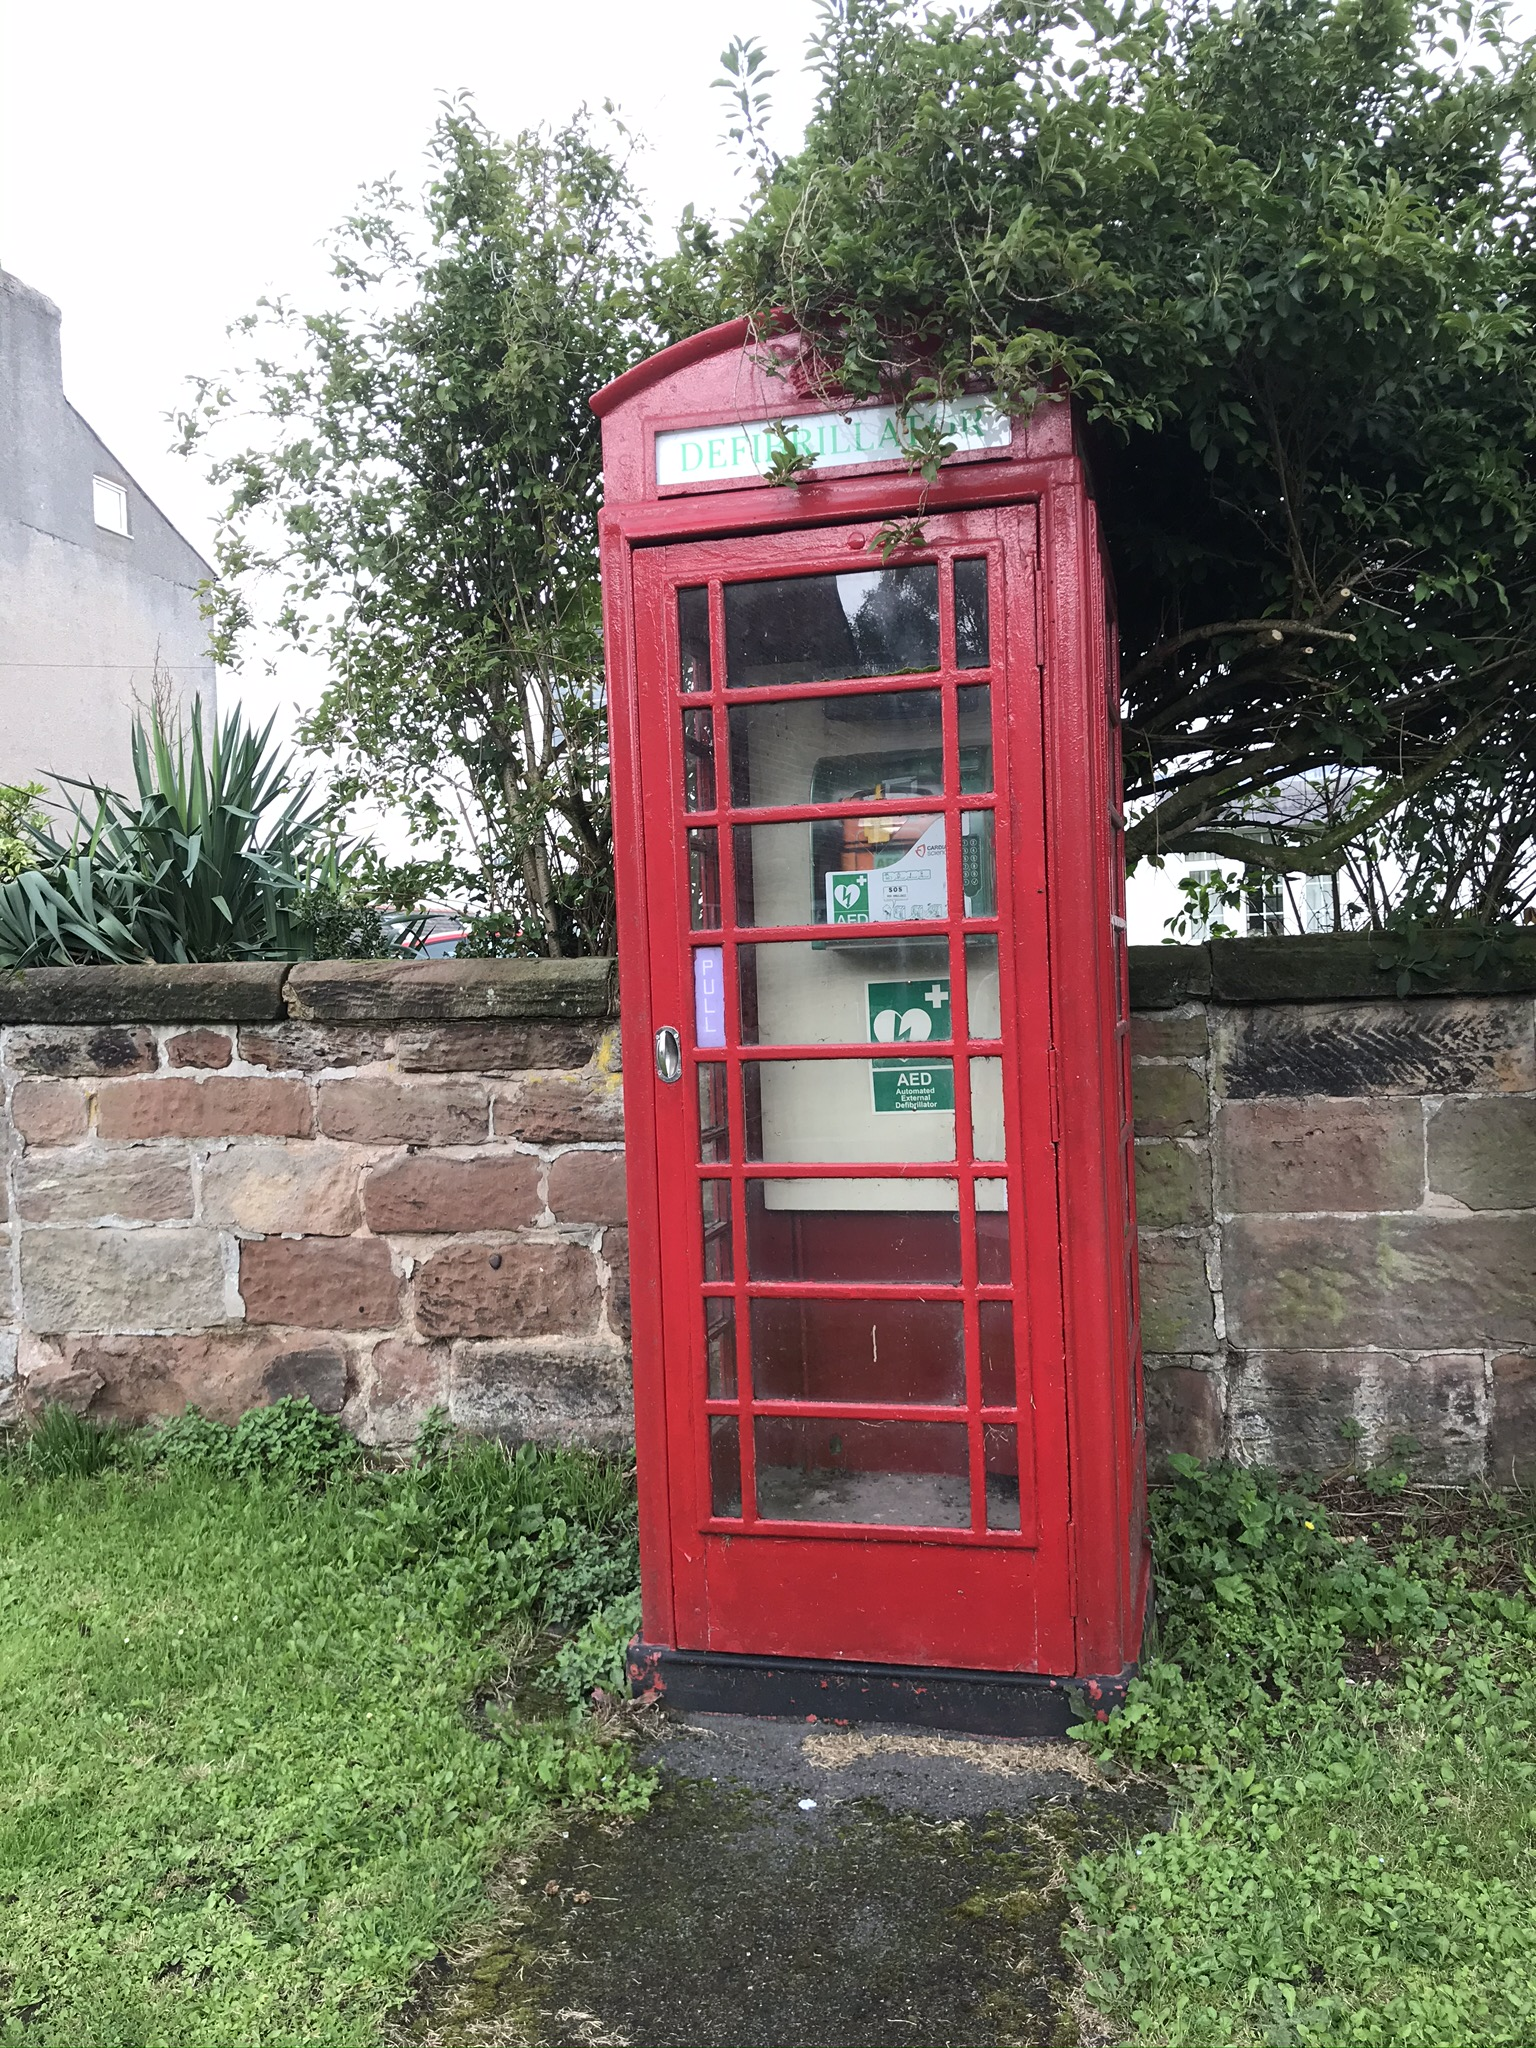 An old red telephone box containing an automated external defibrilator